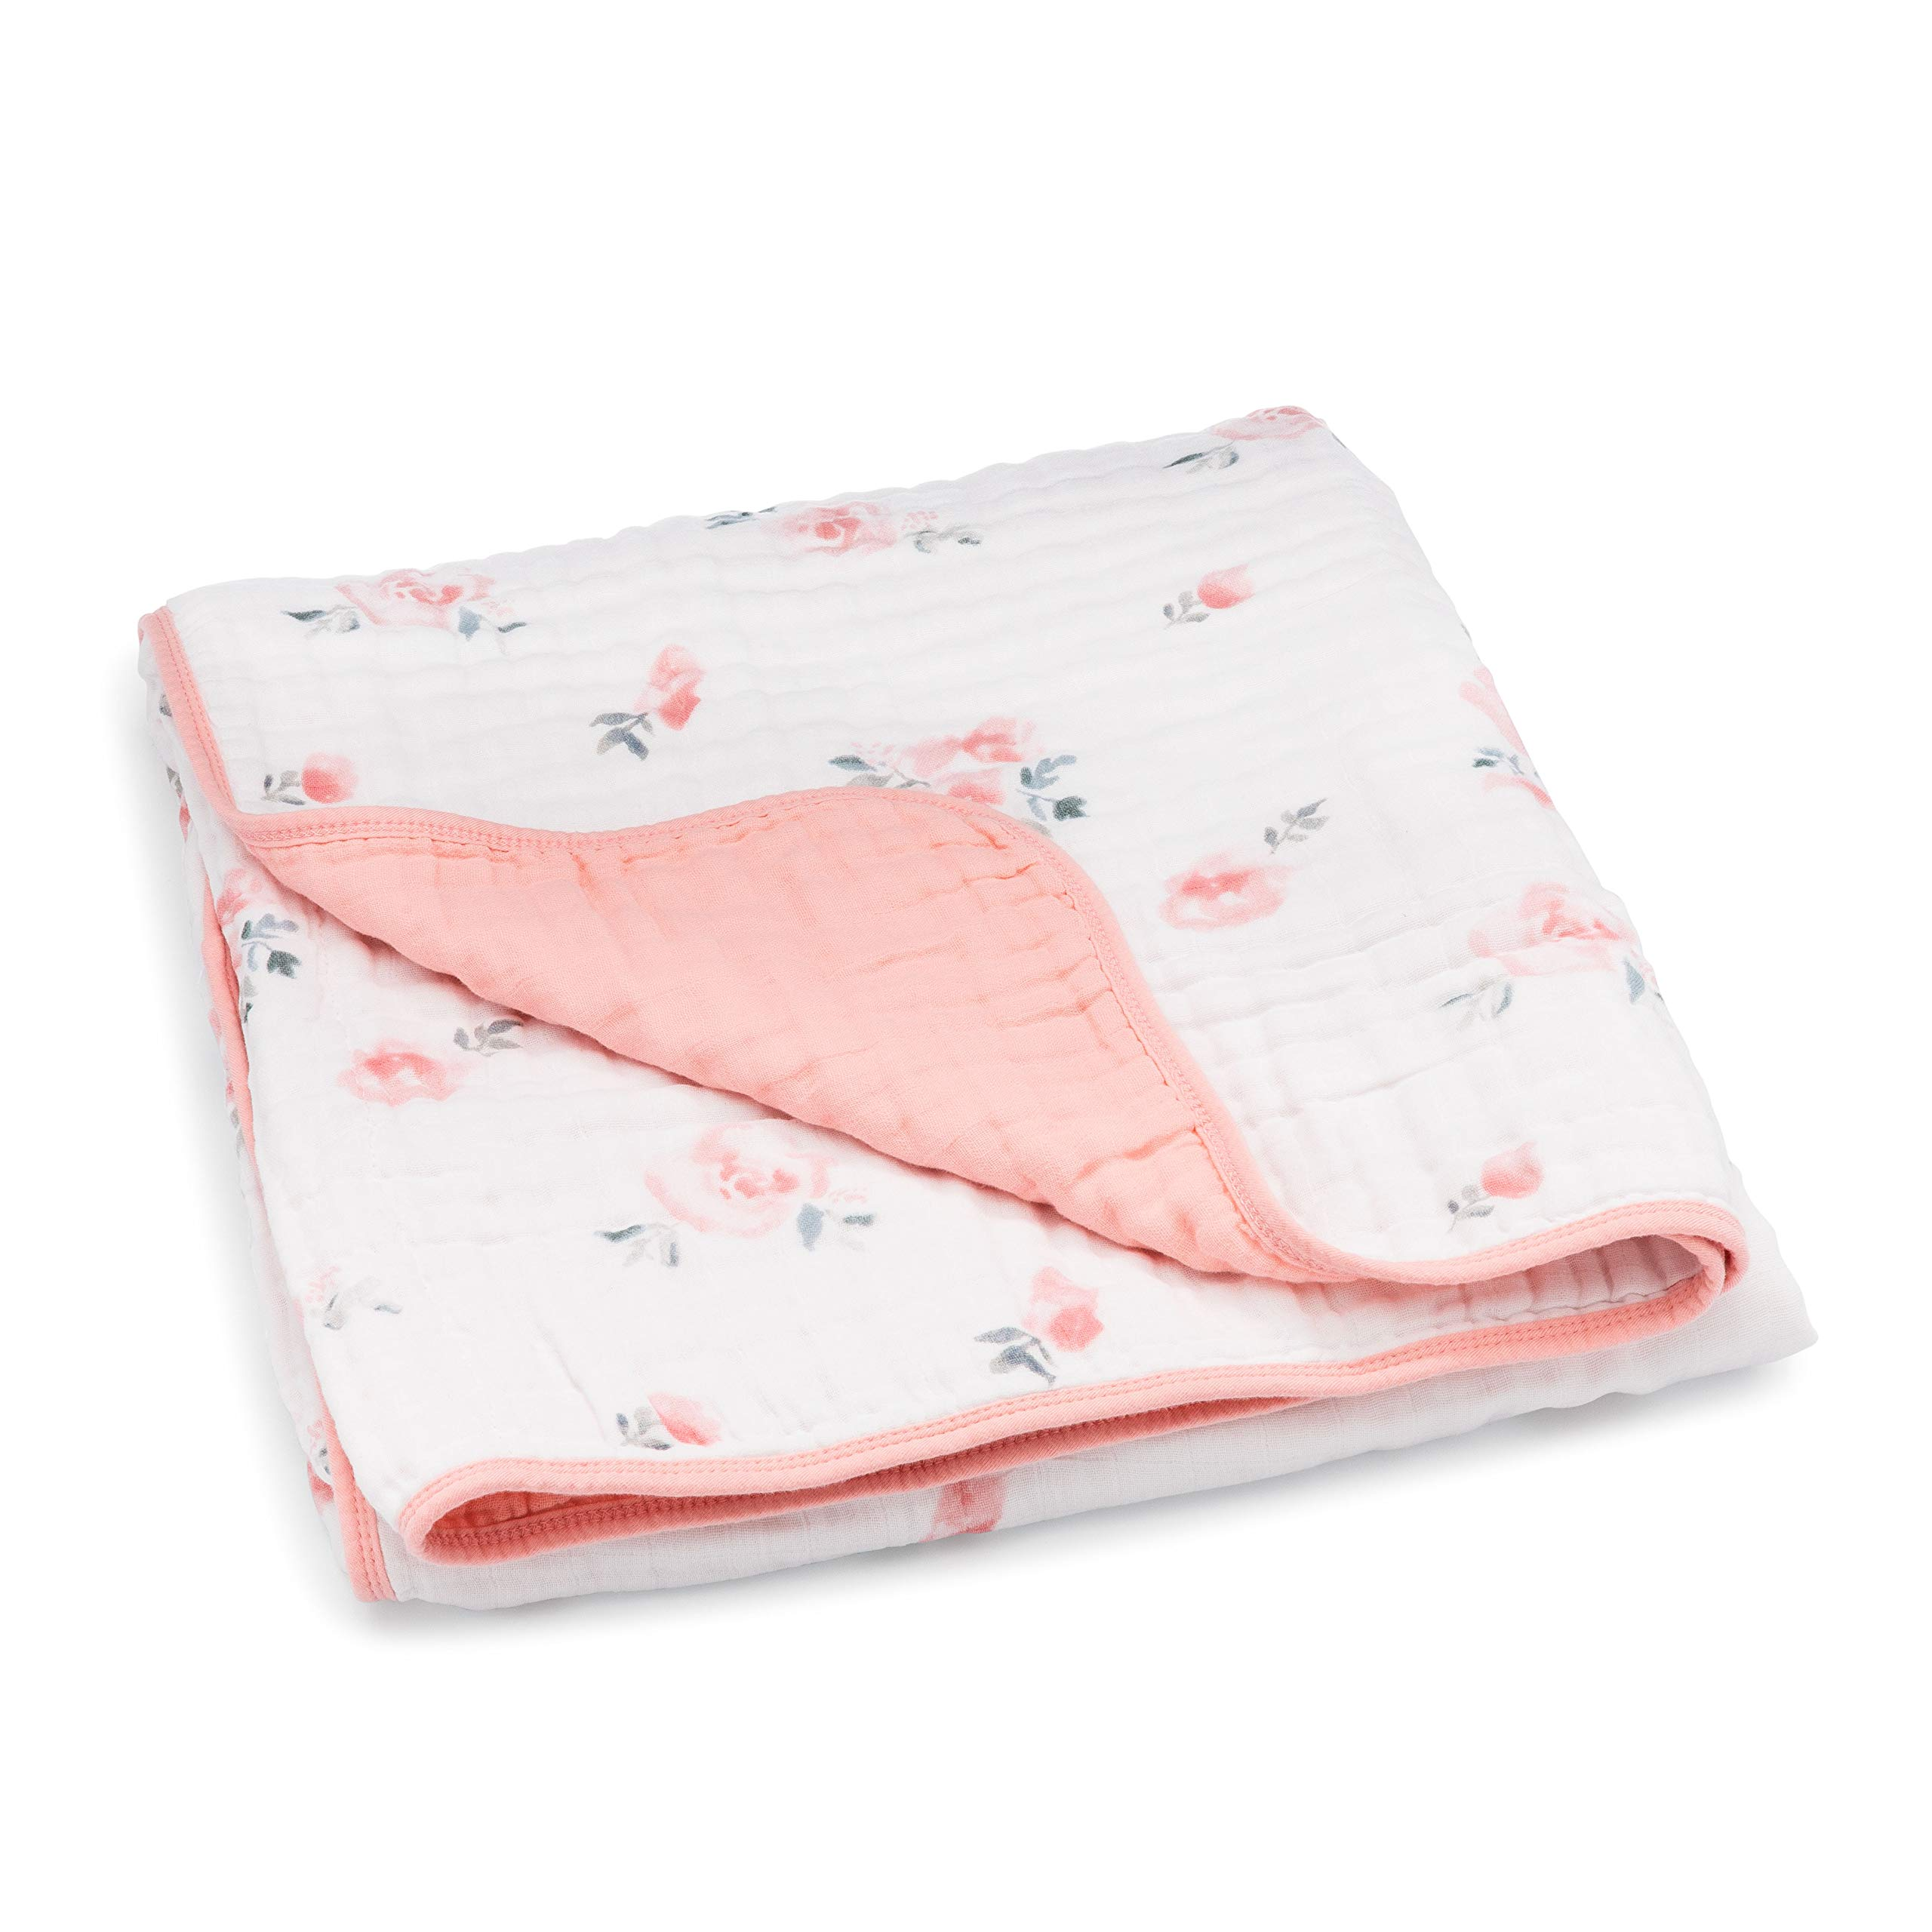 Parker Baby Muslin Blanket - 100% Soft Cotton Baby Quilt and Kids Blanket for Girls -''Dreamy Floral'' by Parker Baby Co.